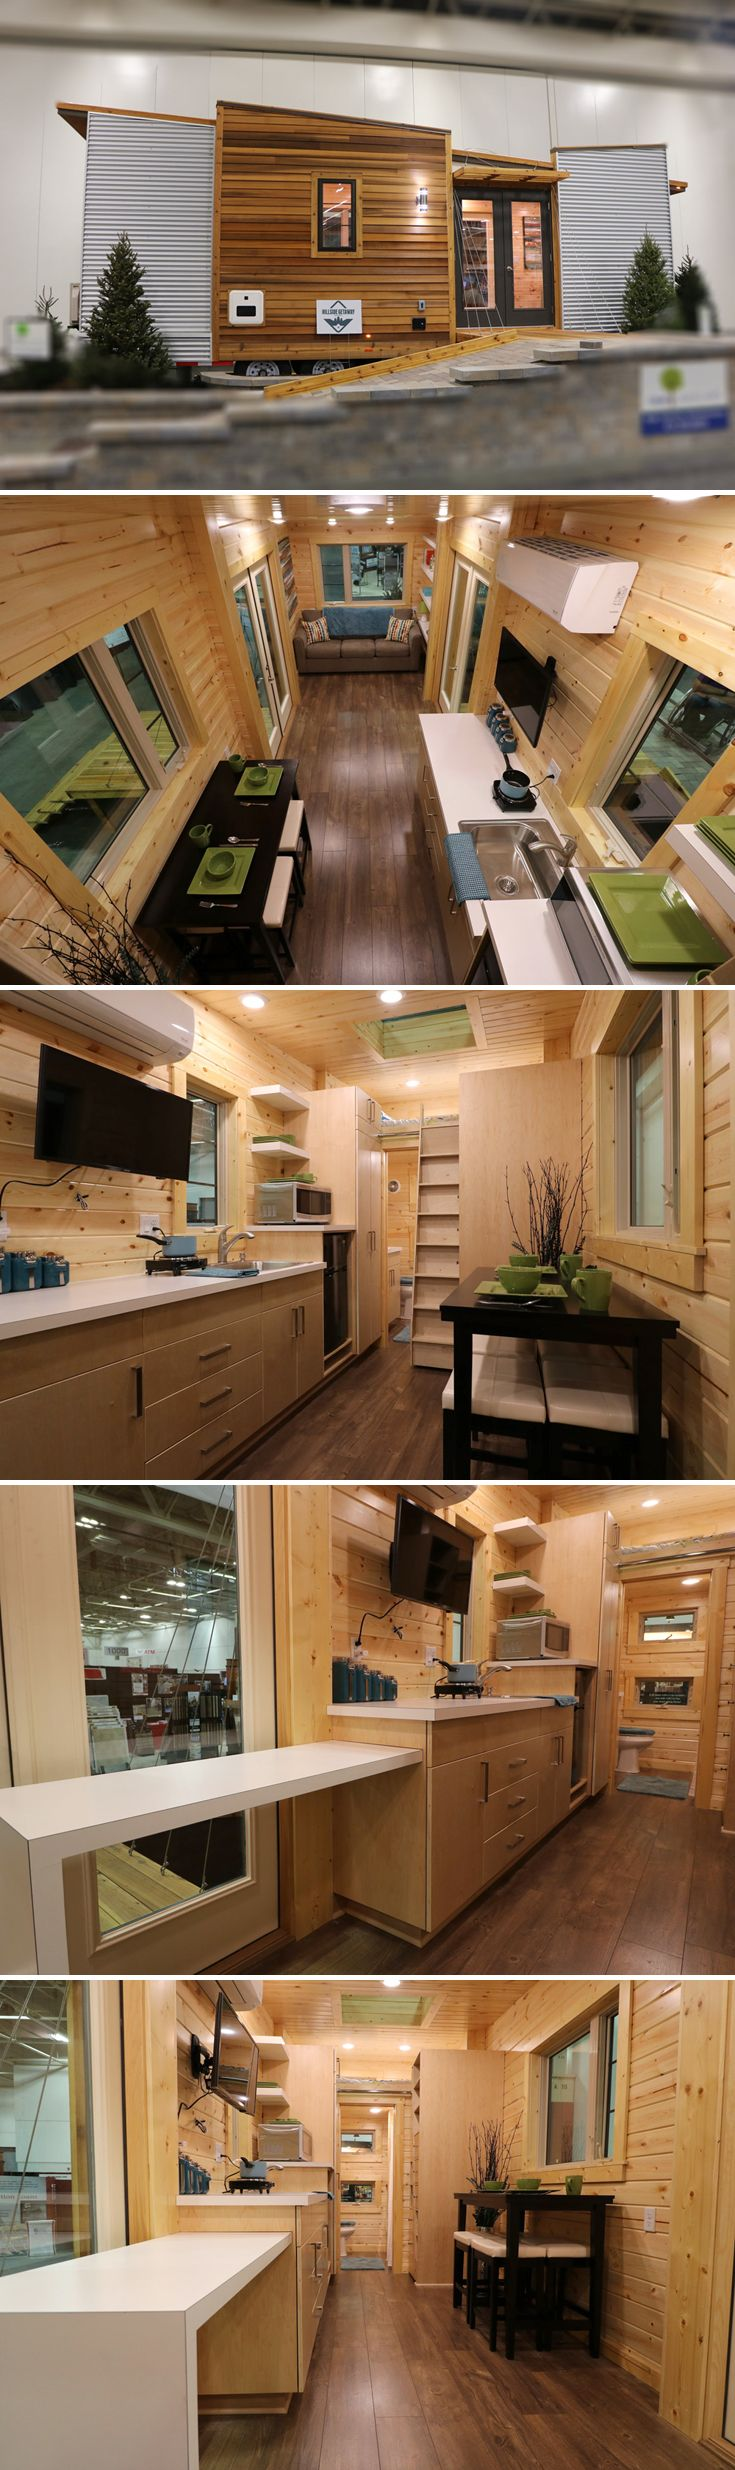 Tiny Home Designs: Dragonfly By Utopian Villas